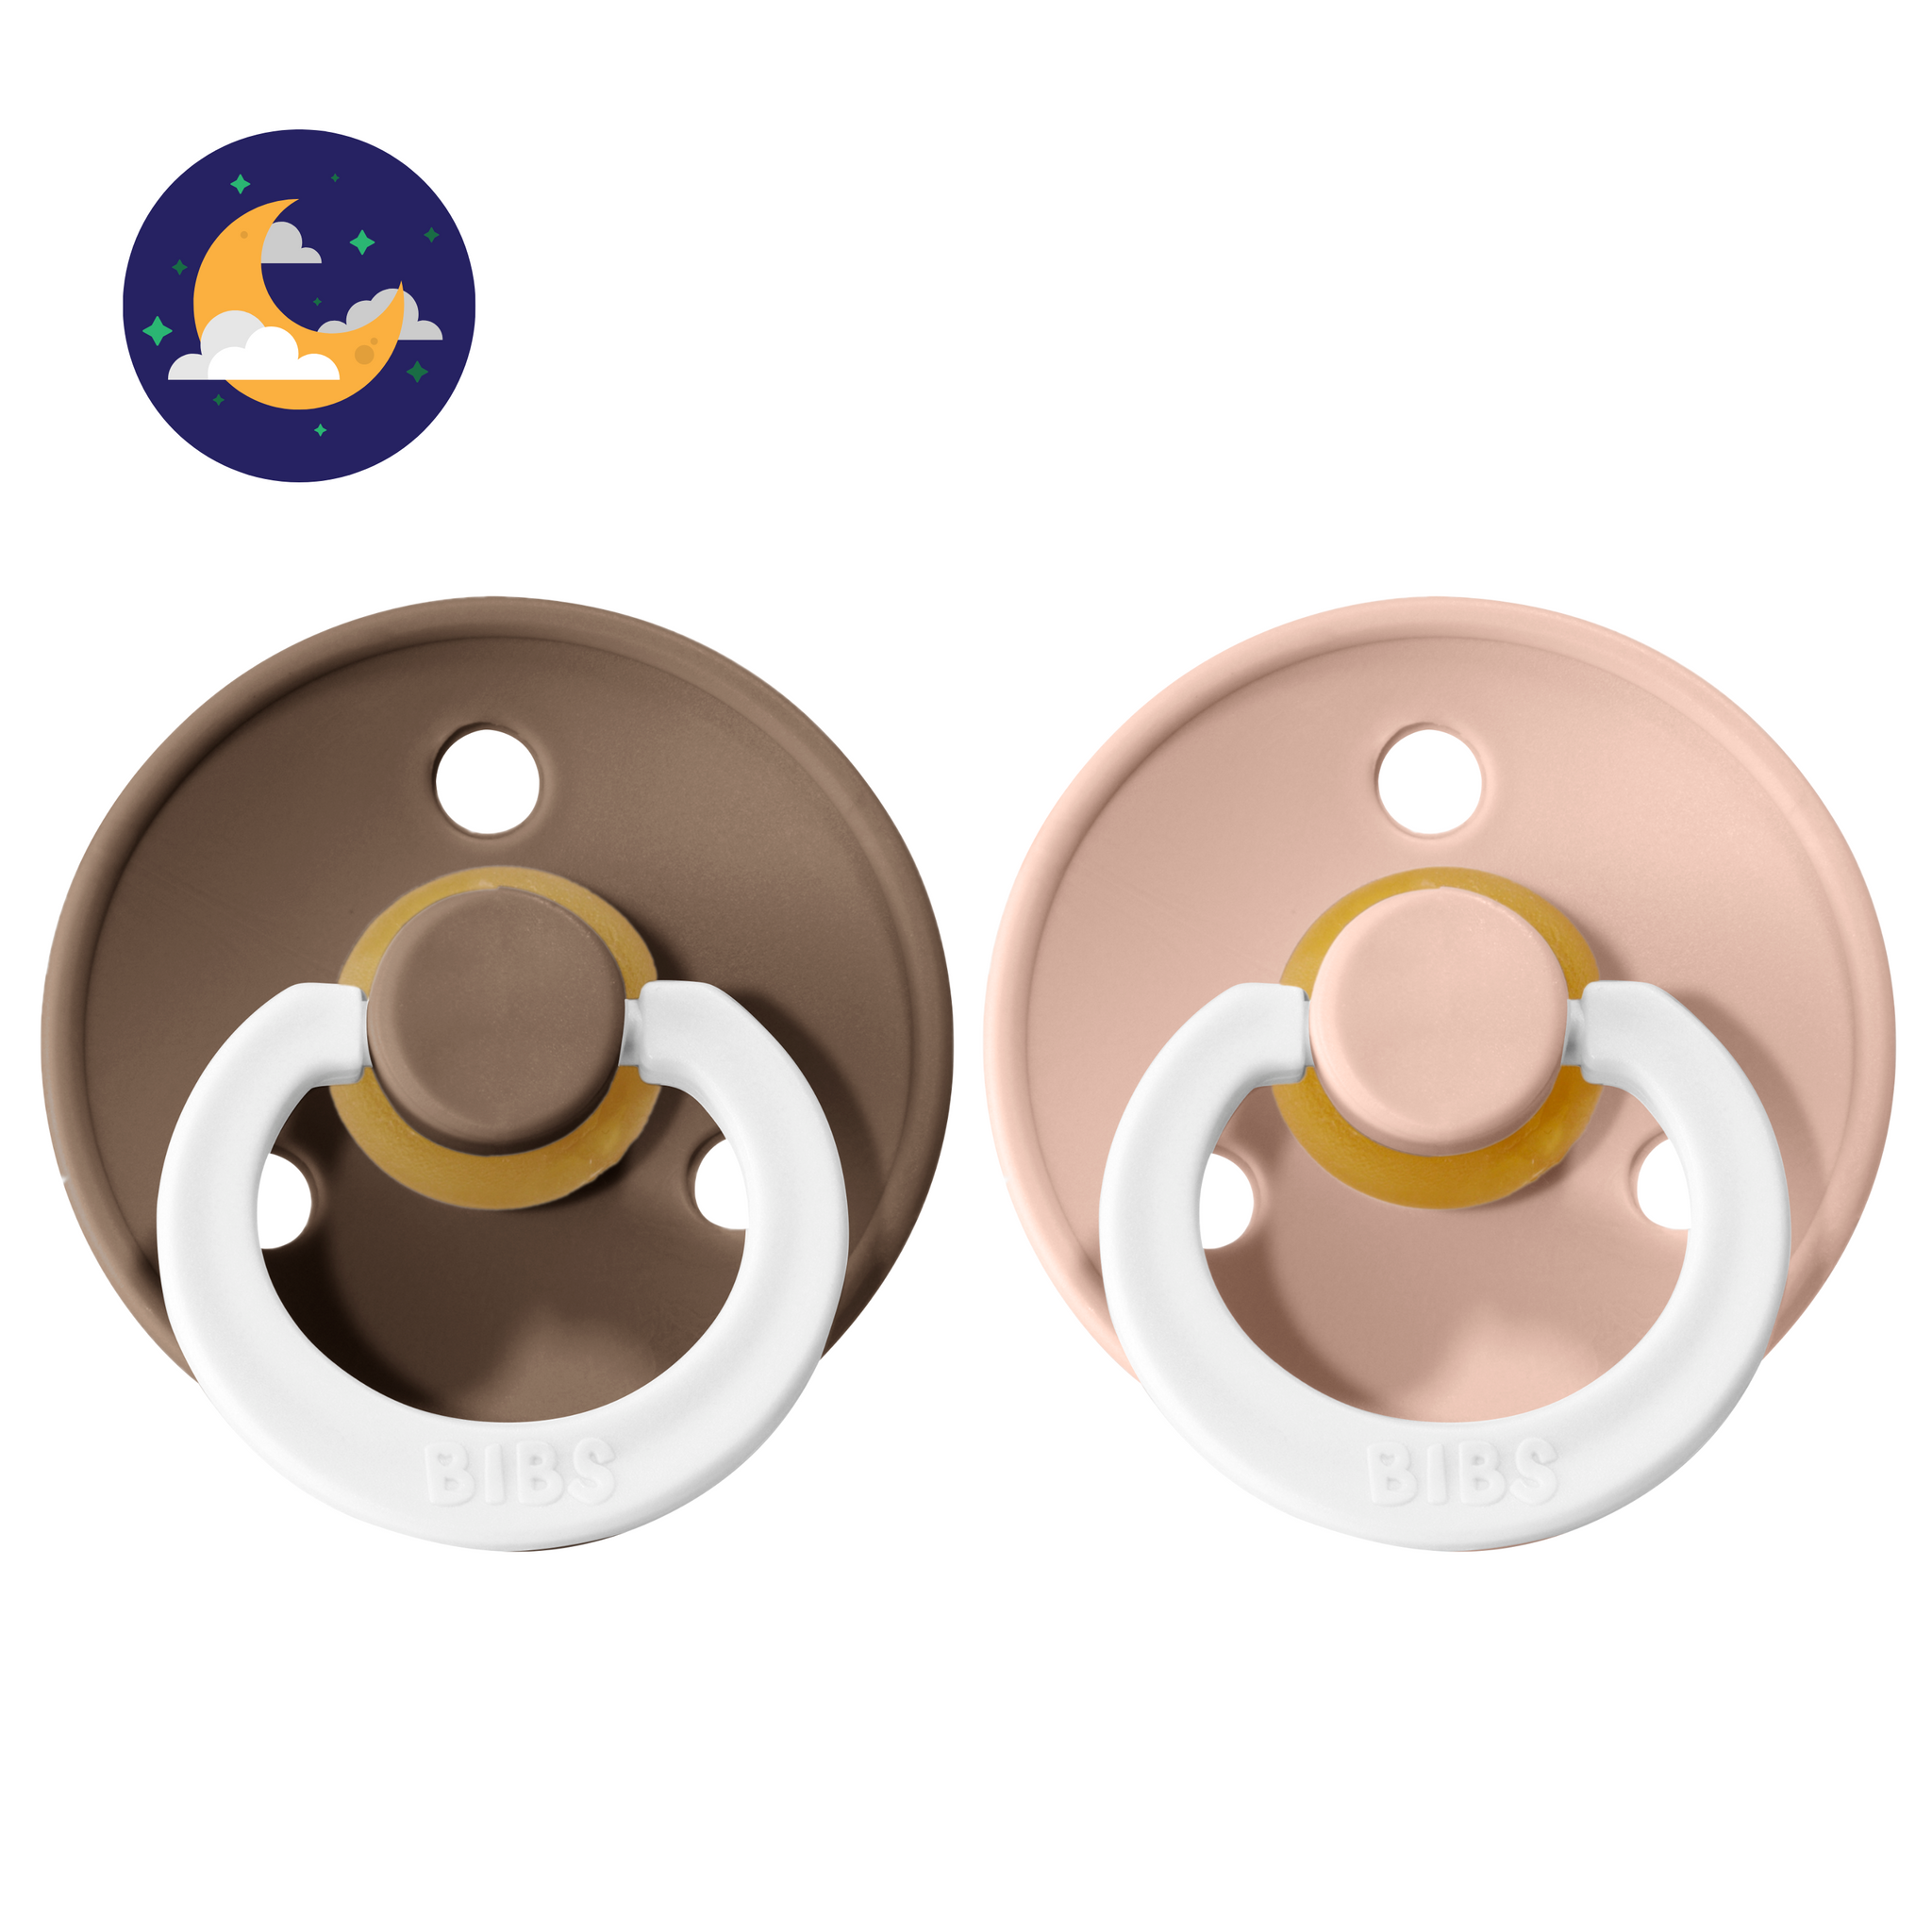 2-pack 0-6M pacifiers night blush + dark oak / glow in the dark